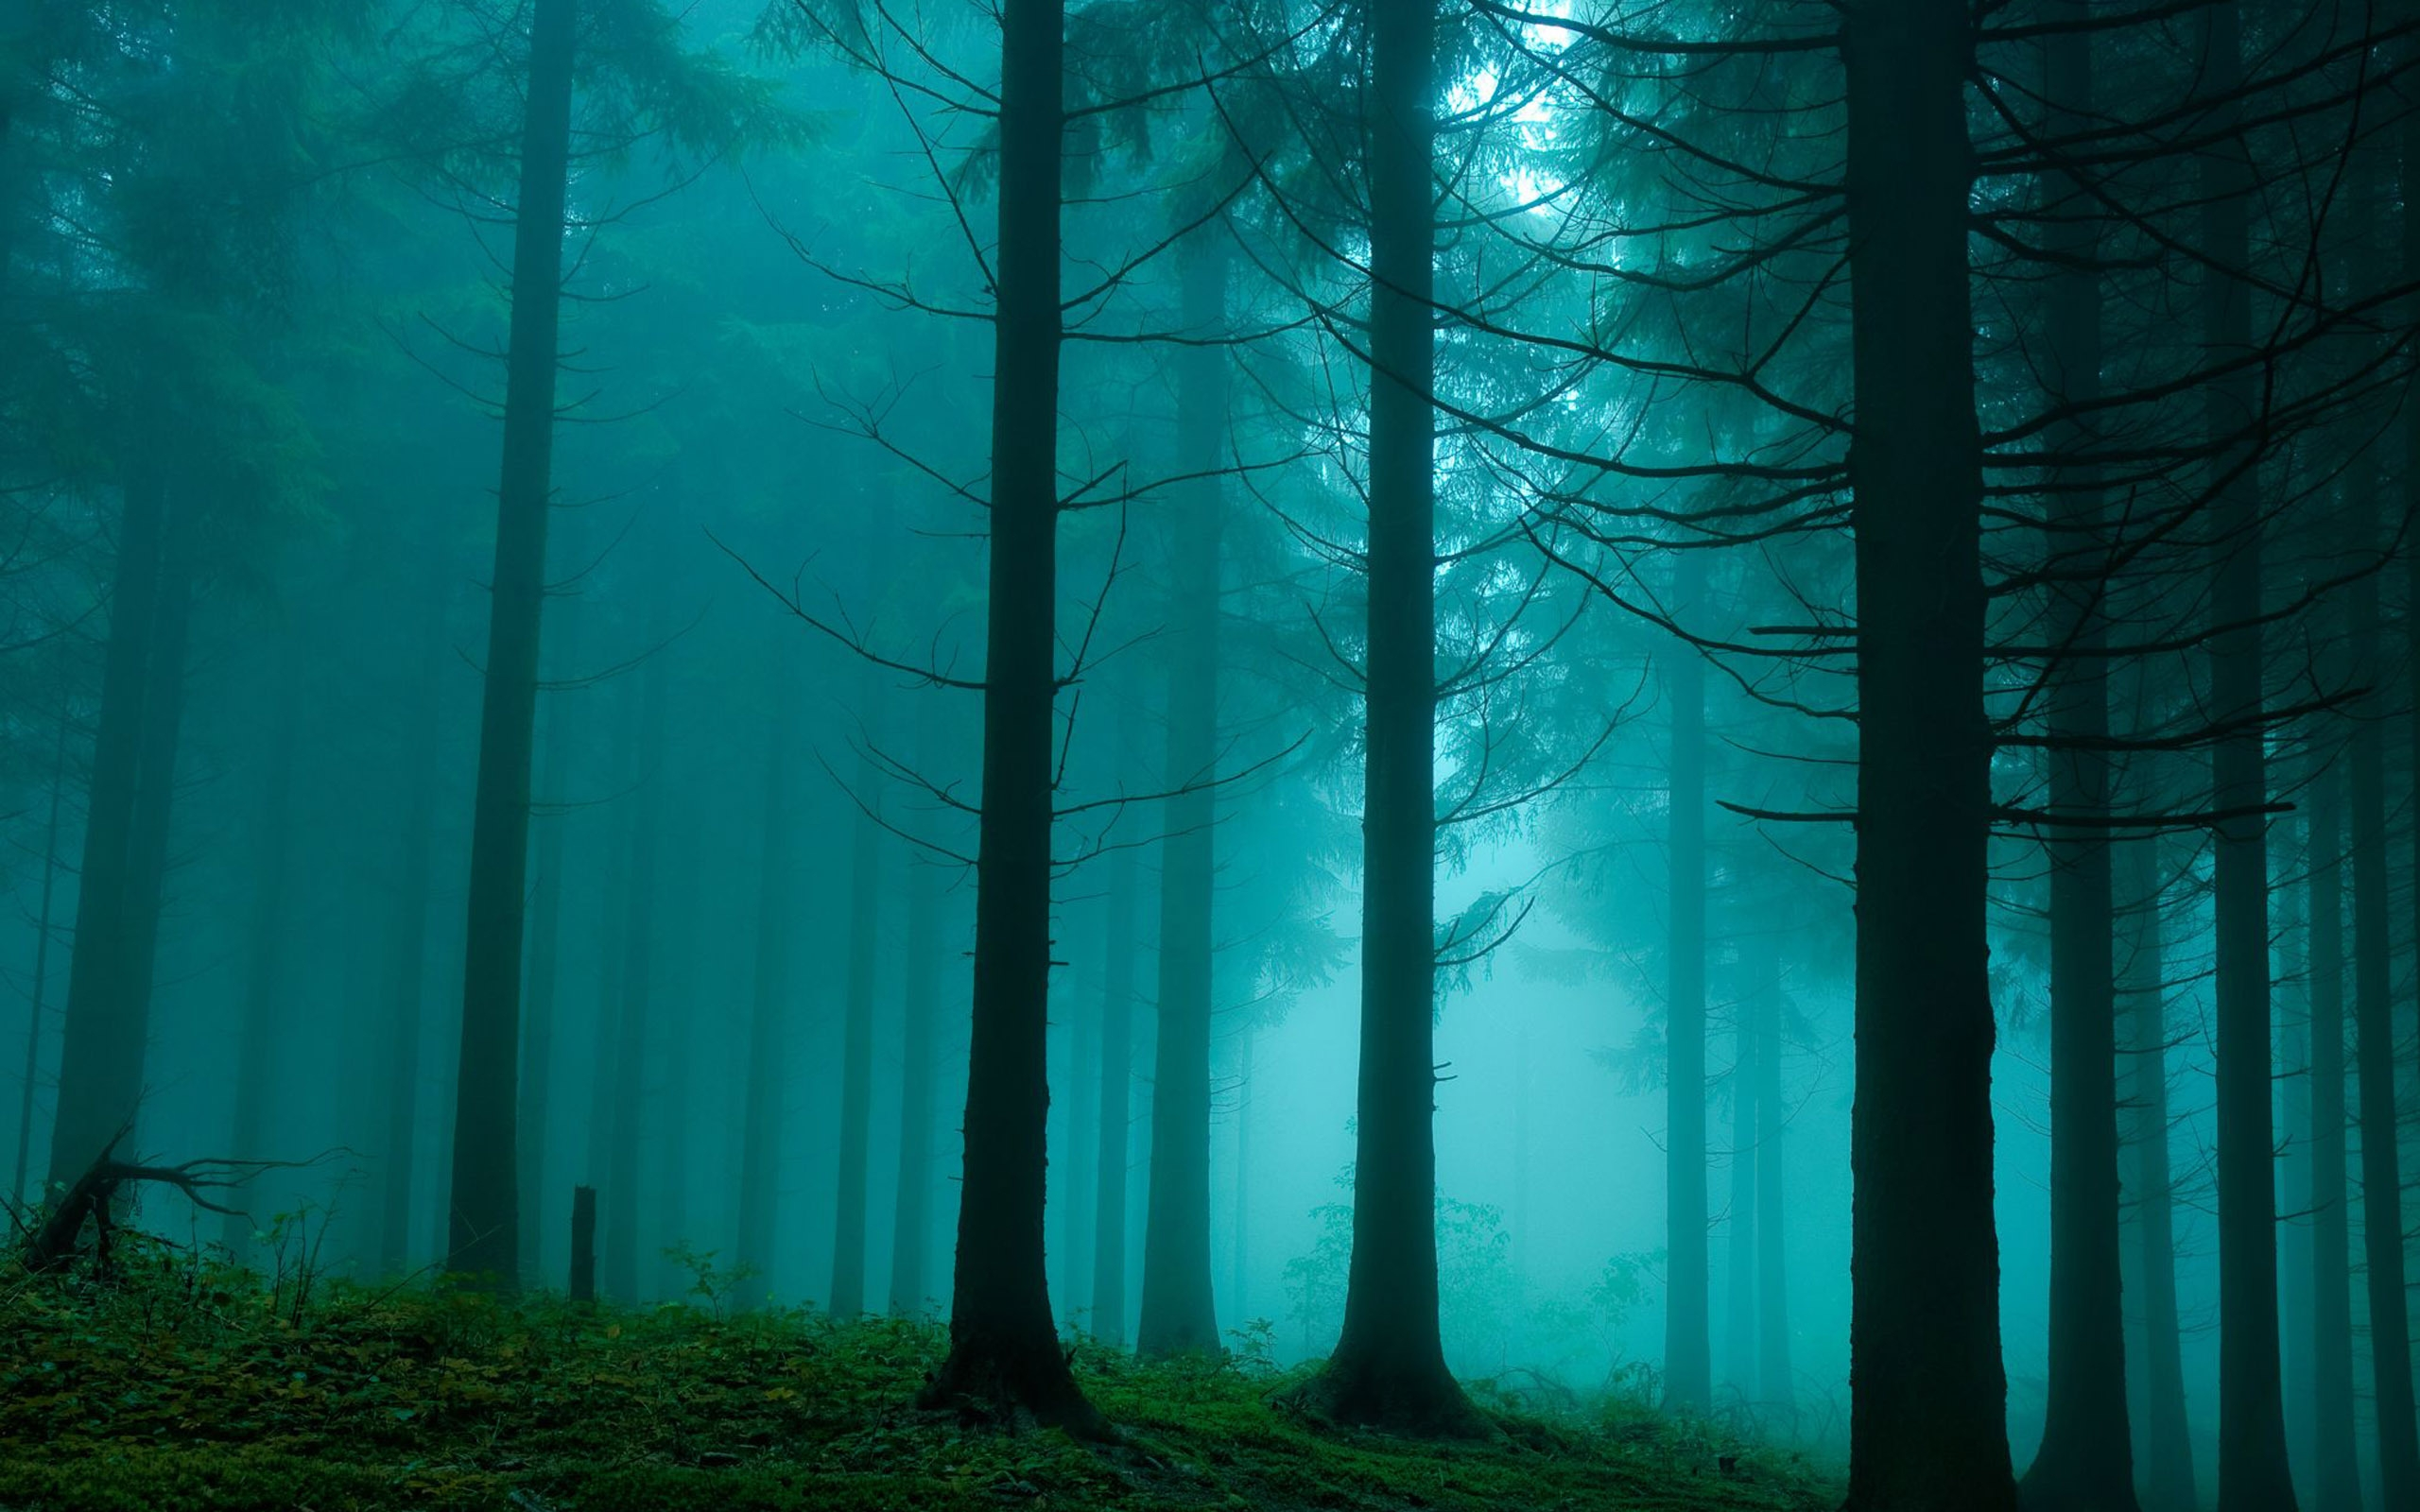 Forest In The Mist Nature Mac Wallpaper Download | Free Mac ...